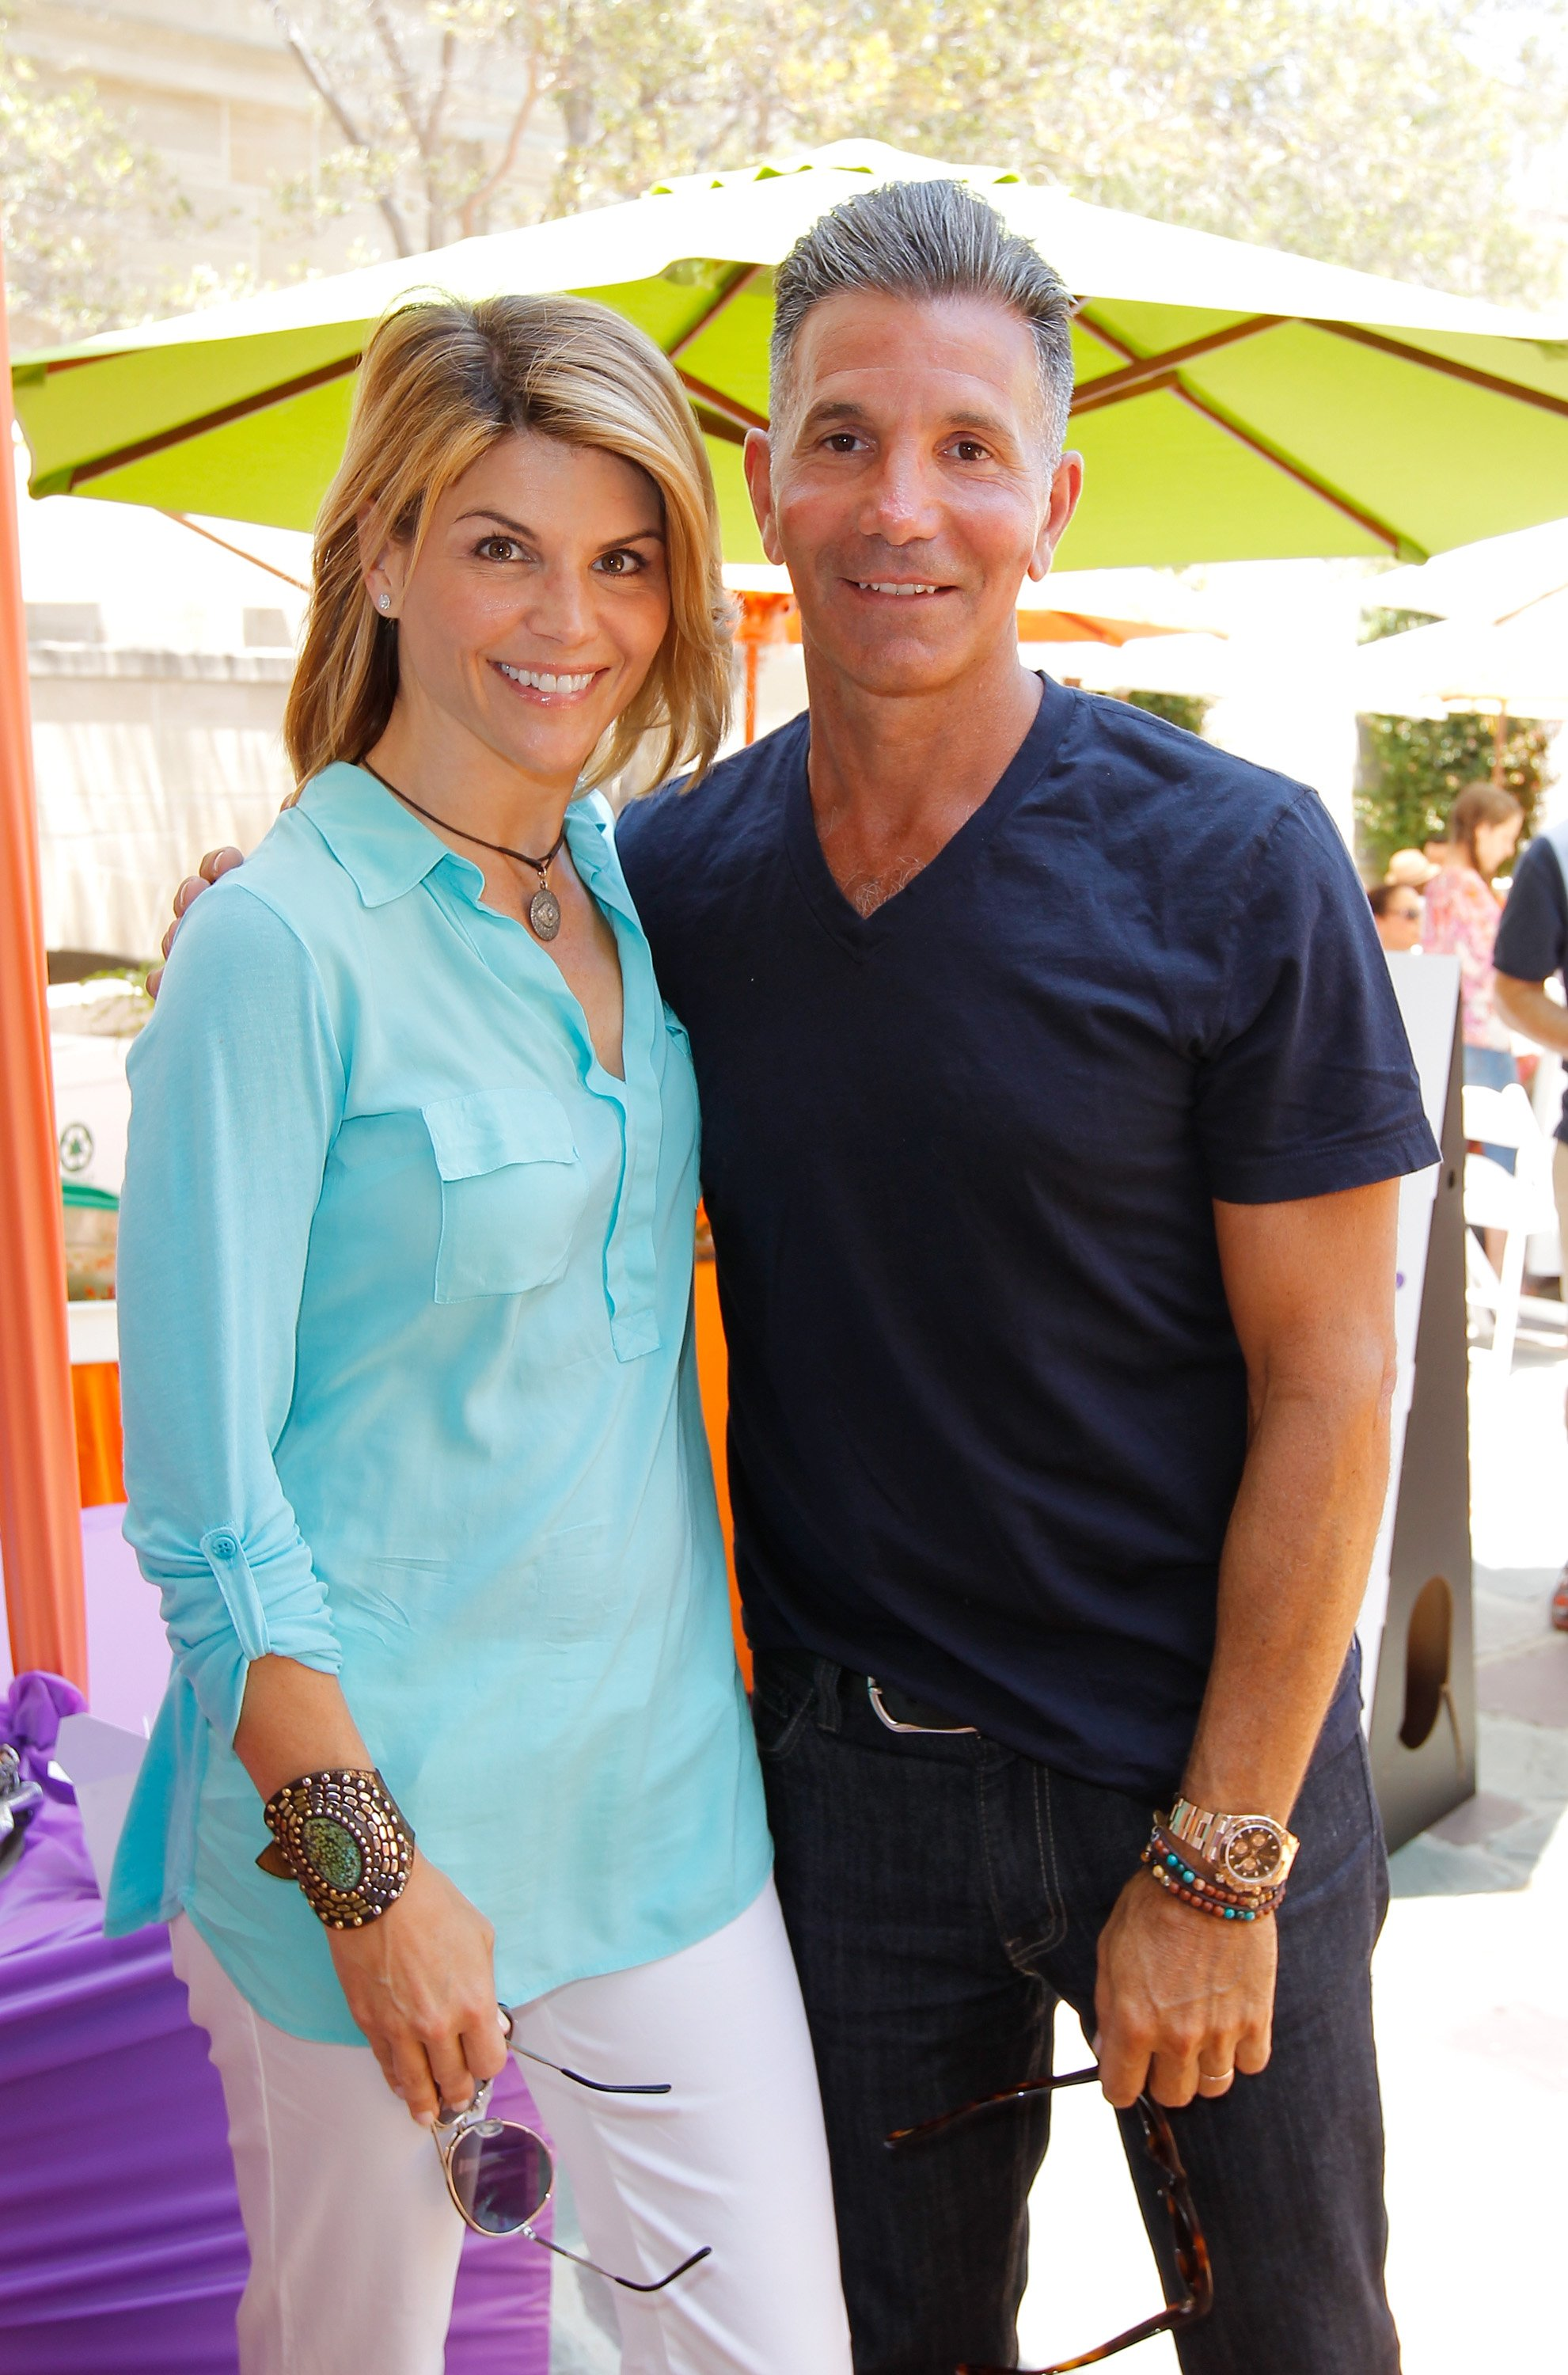 Lori Loughlin and Mossimo Giannulli pictured attending the 6th Annual Kidstock Music And Arts Festival, 2012. | Photo: Getty Images